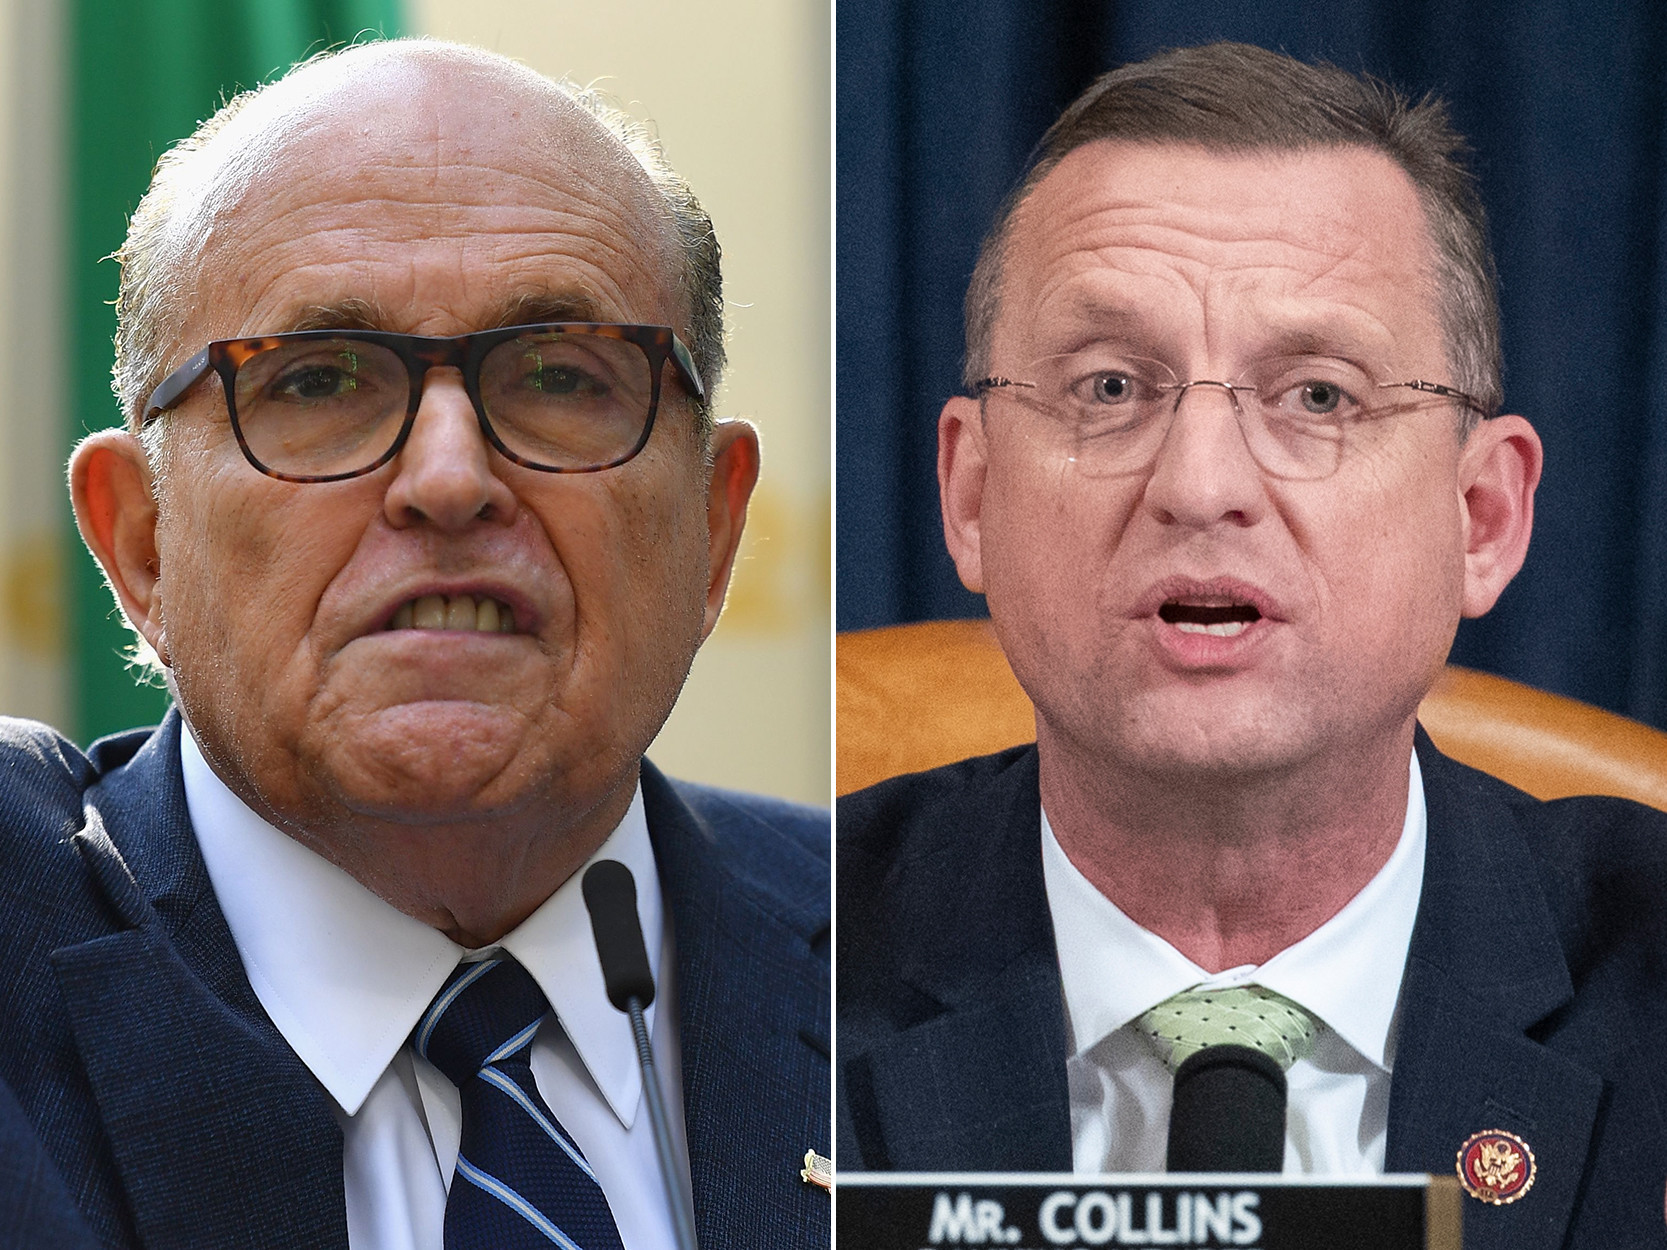 Rudy Giuliani backs Rep. Doug Collins in looming GOP Senate brawl in Georgia